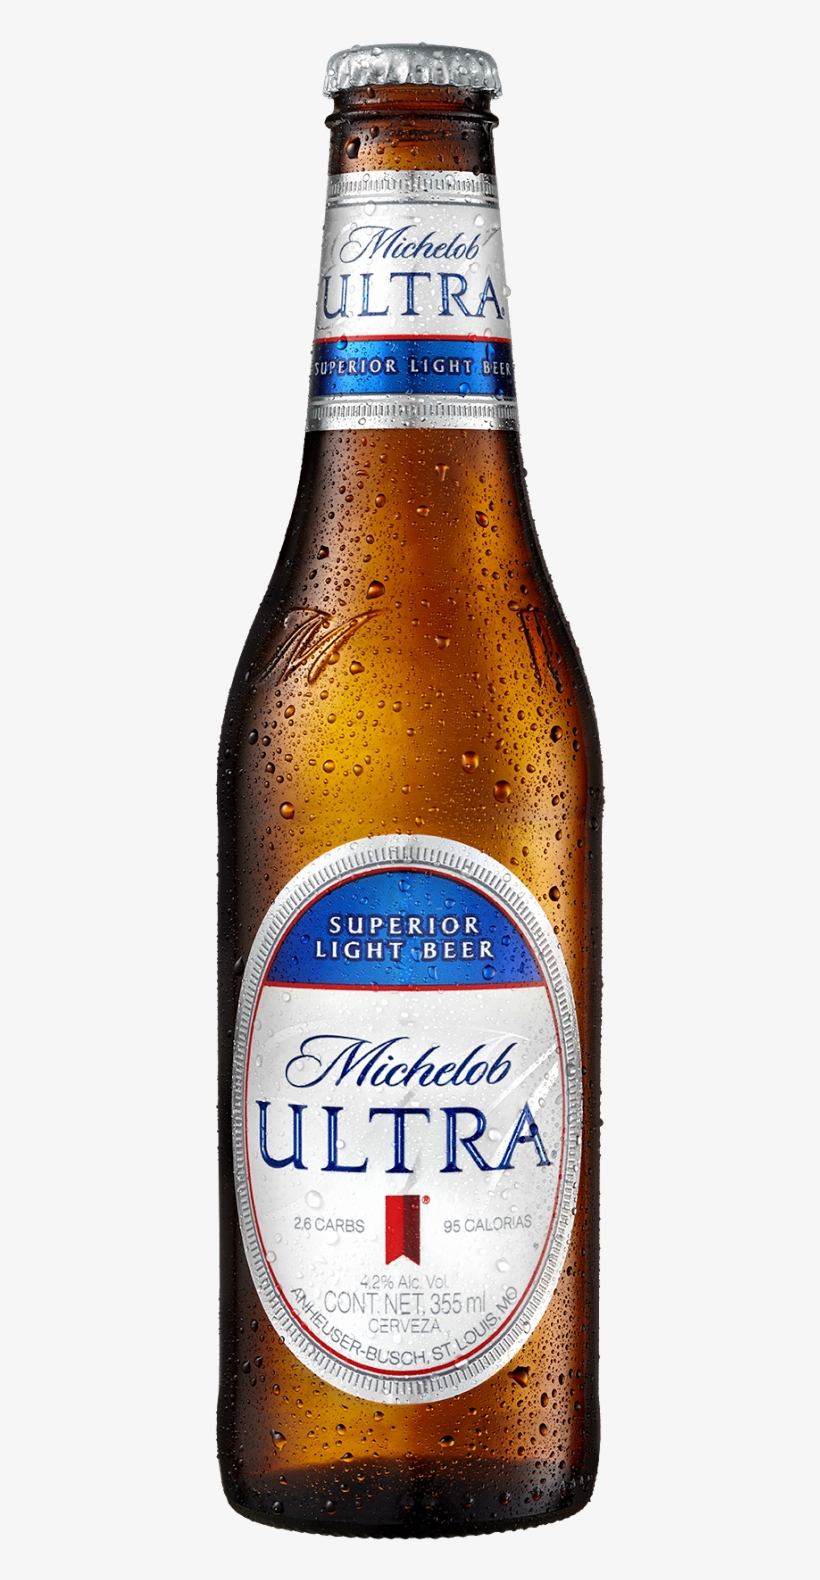 Con Sólo 95 Calorías Y - Michelob Ultra Lime Cactus Light Beer, 12 Pack, 12, transparent png #1543852